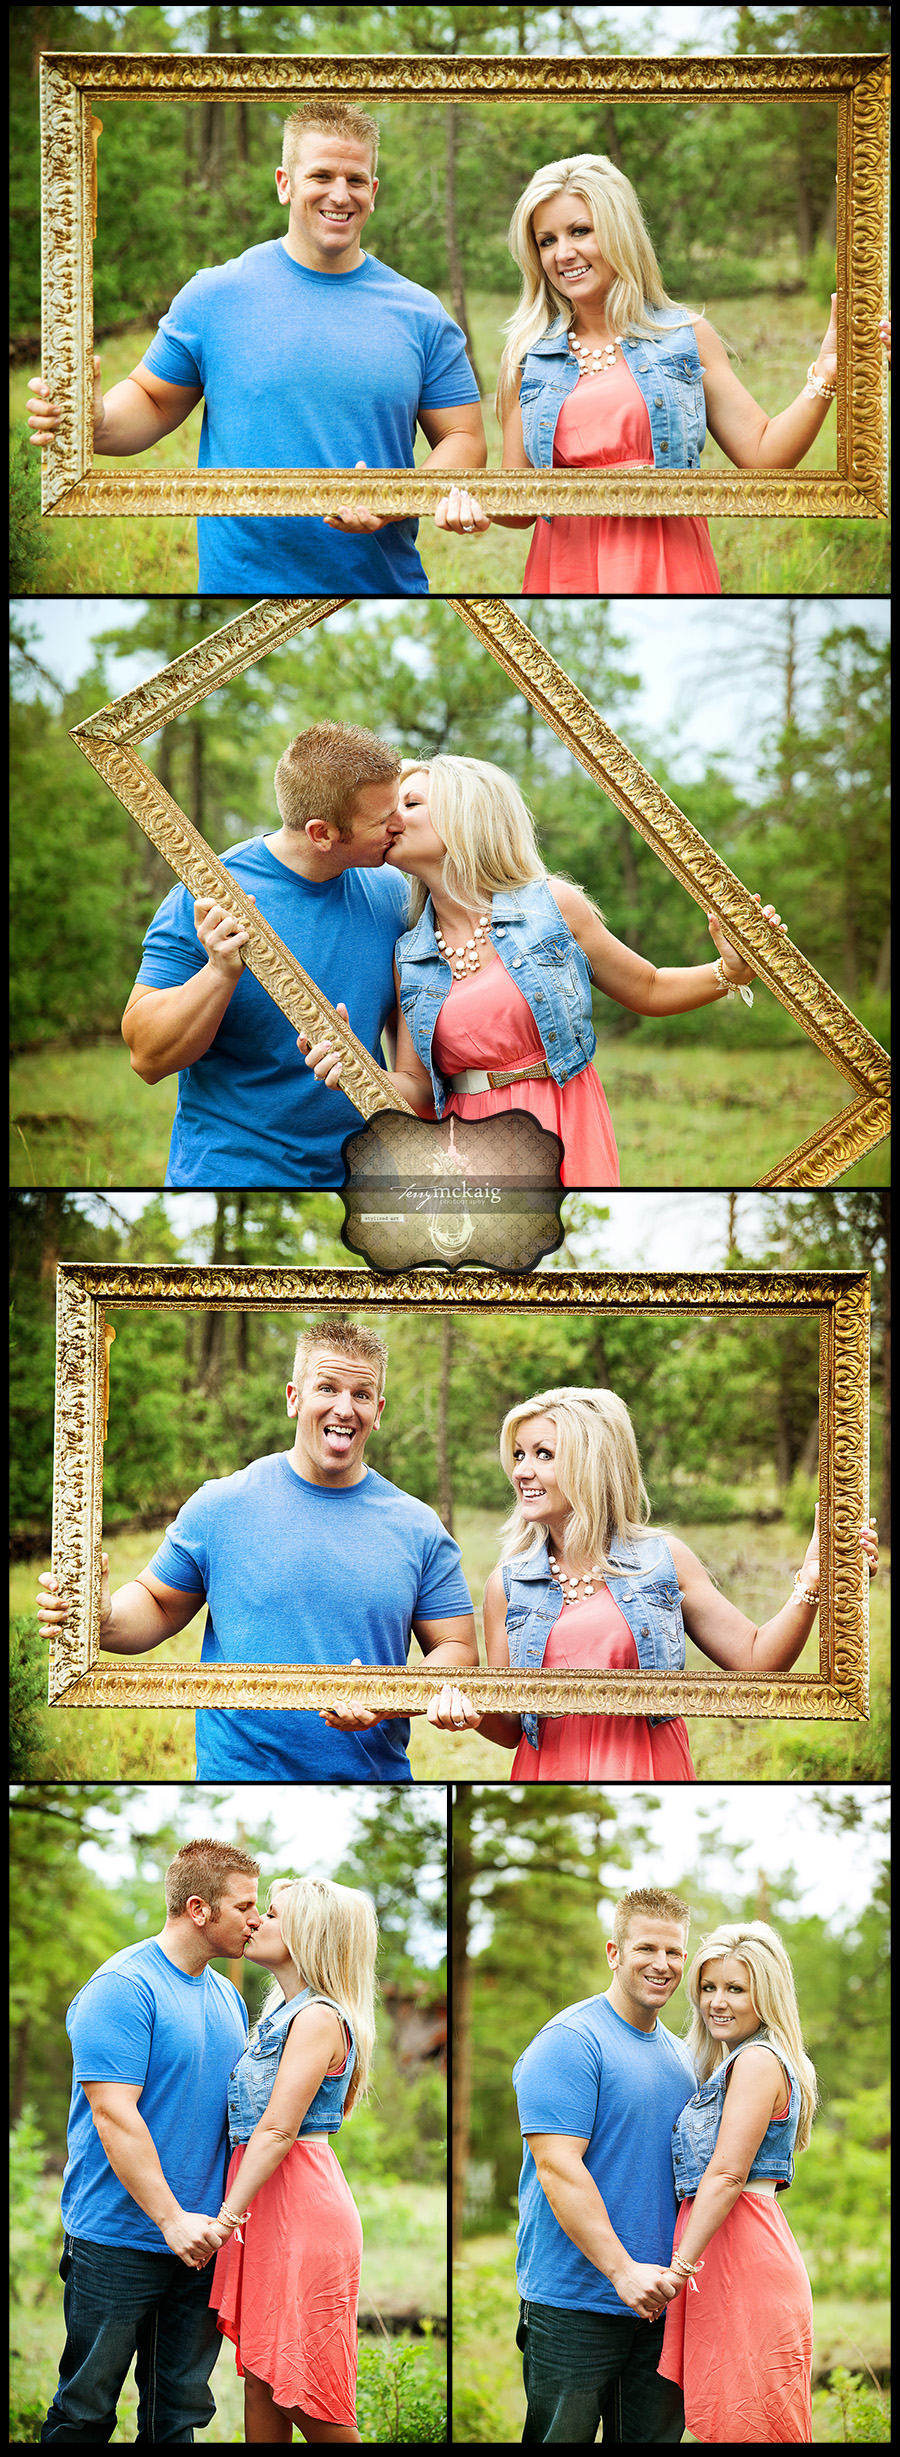 Norther Arizona engagement photographer Terry Mckaig photography